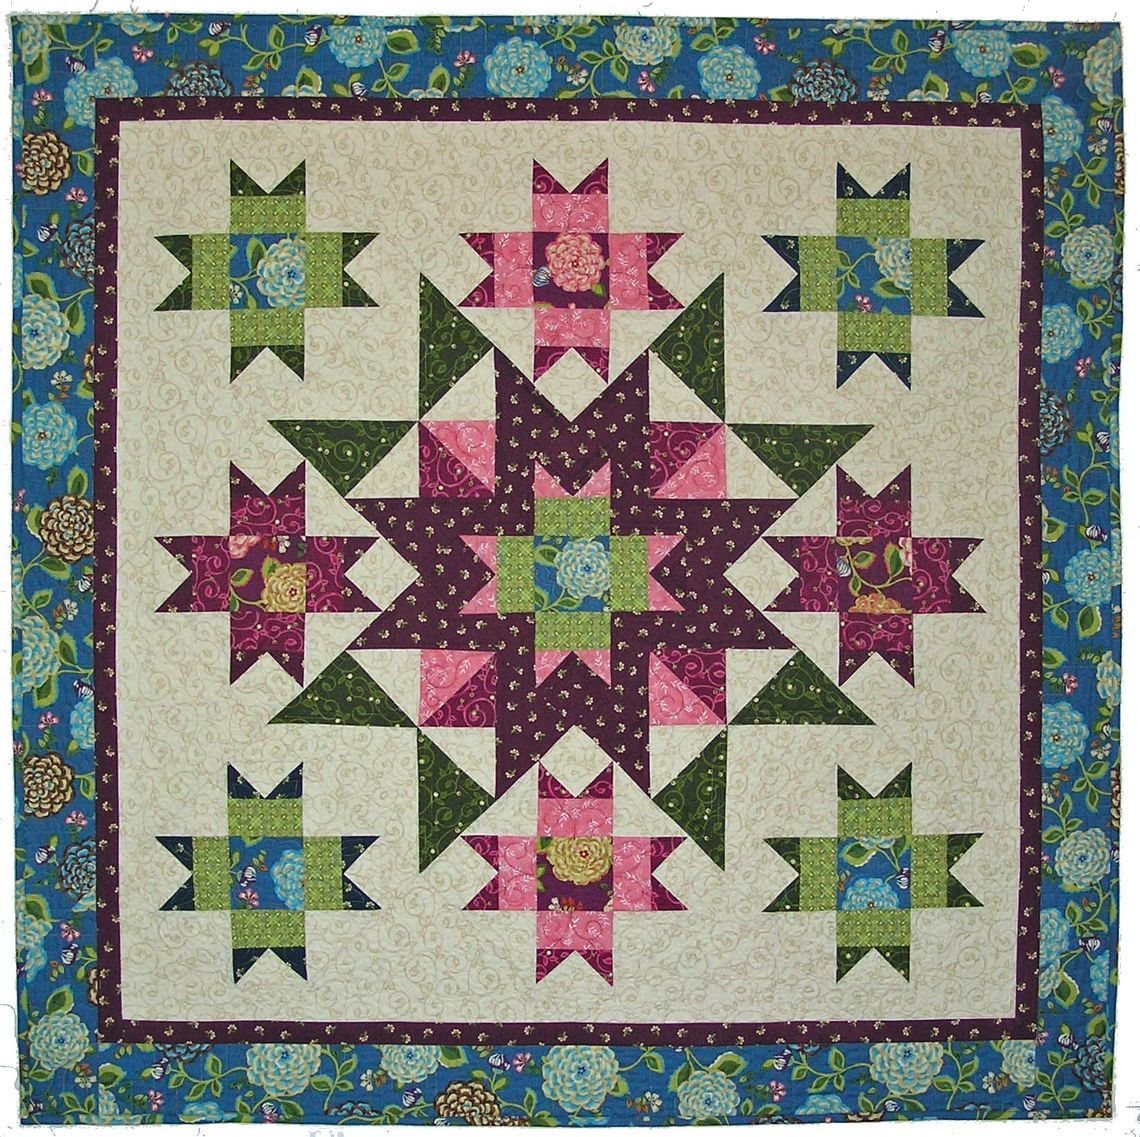 quilts color pattern fly along shoofly pixie border shoo by girl quilt medallion